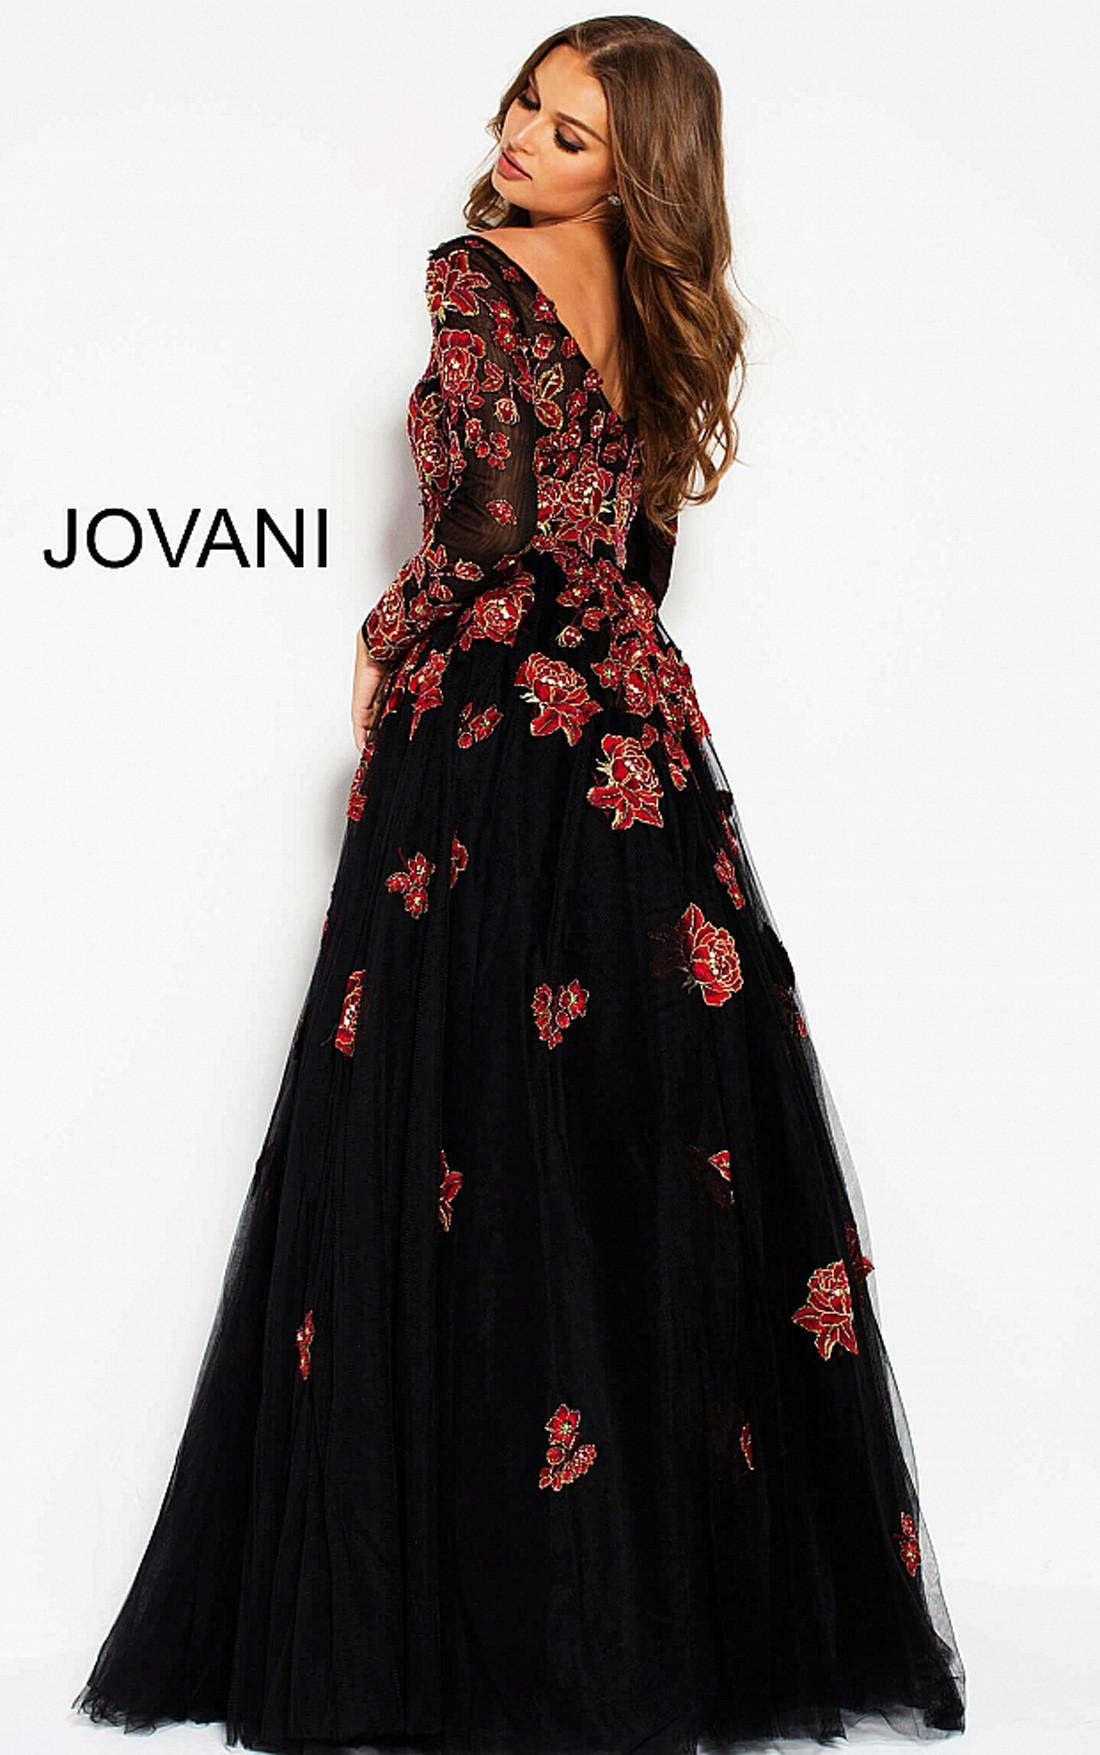 Jovani Dresses | Womens Black Gown with Red Floral Embroidery ...